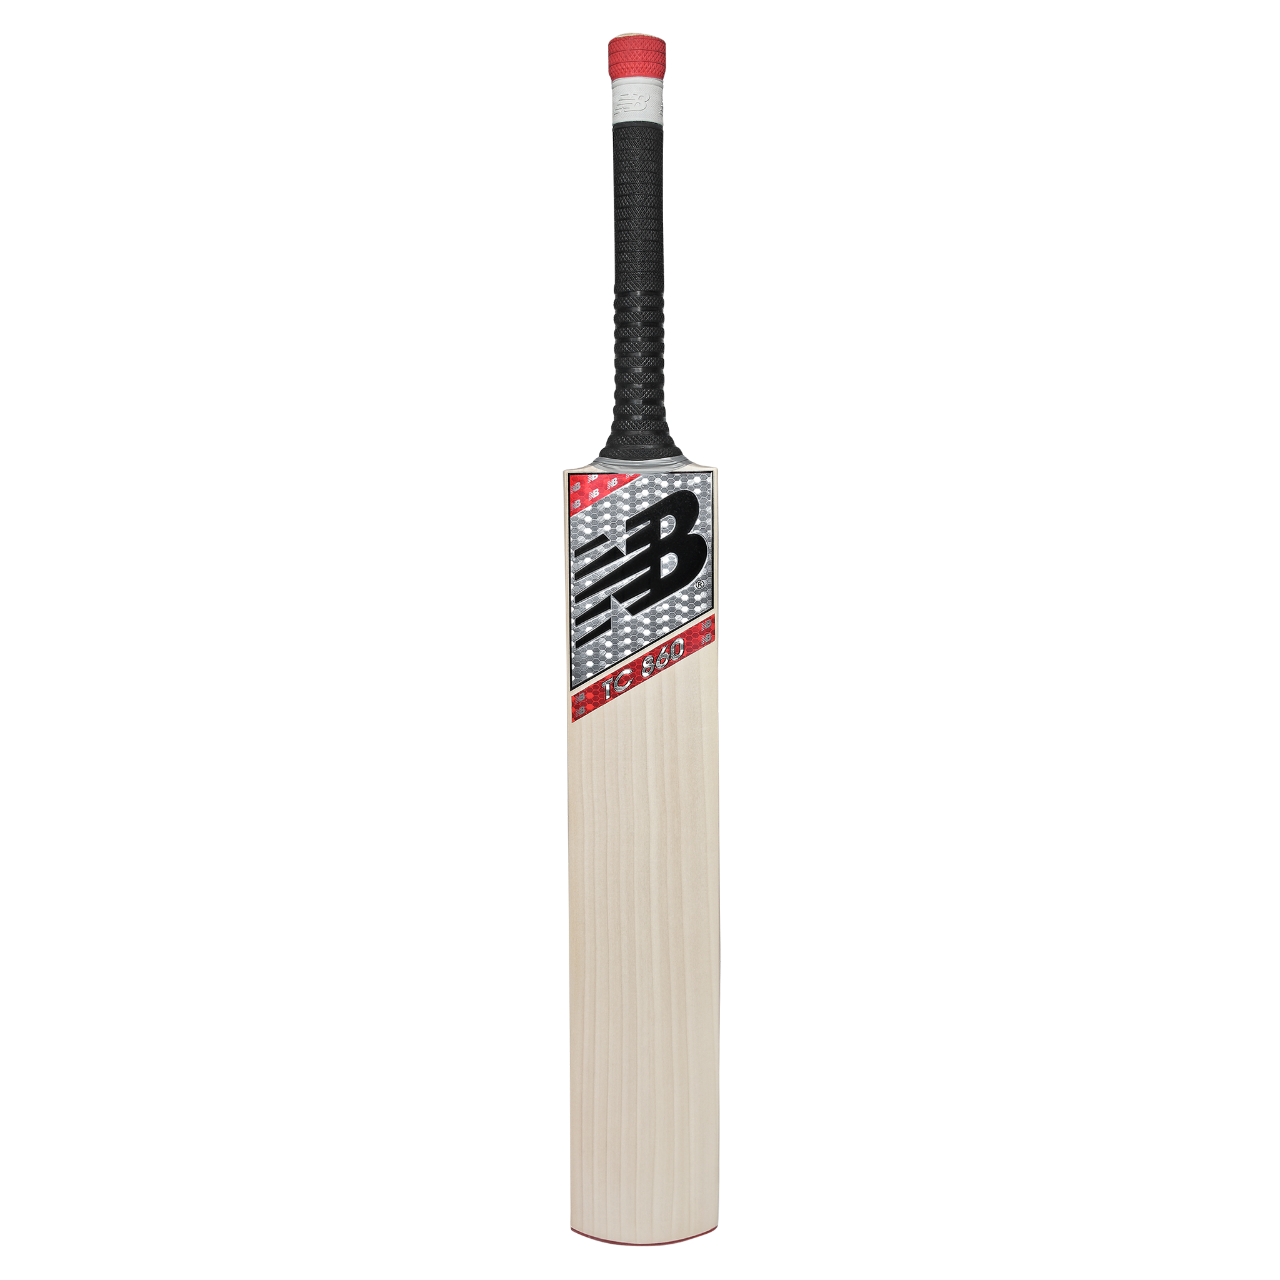 2020 New Balance TC 860 Junior Cricket Bat